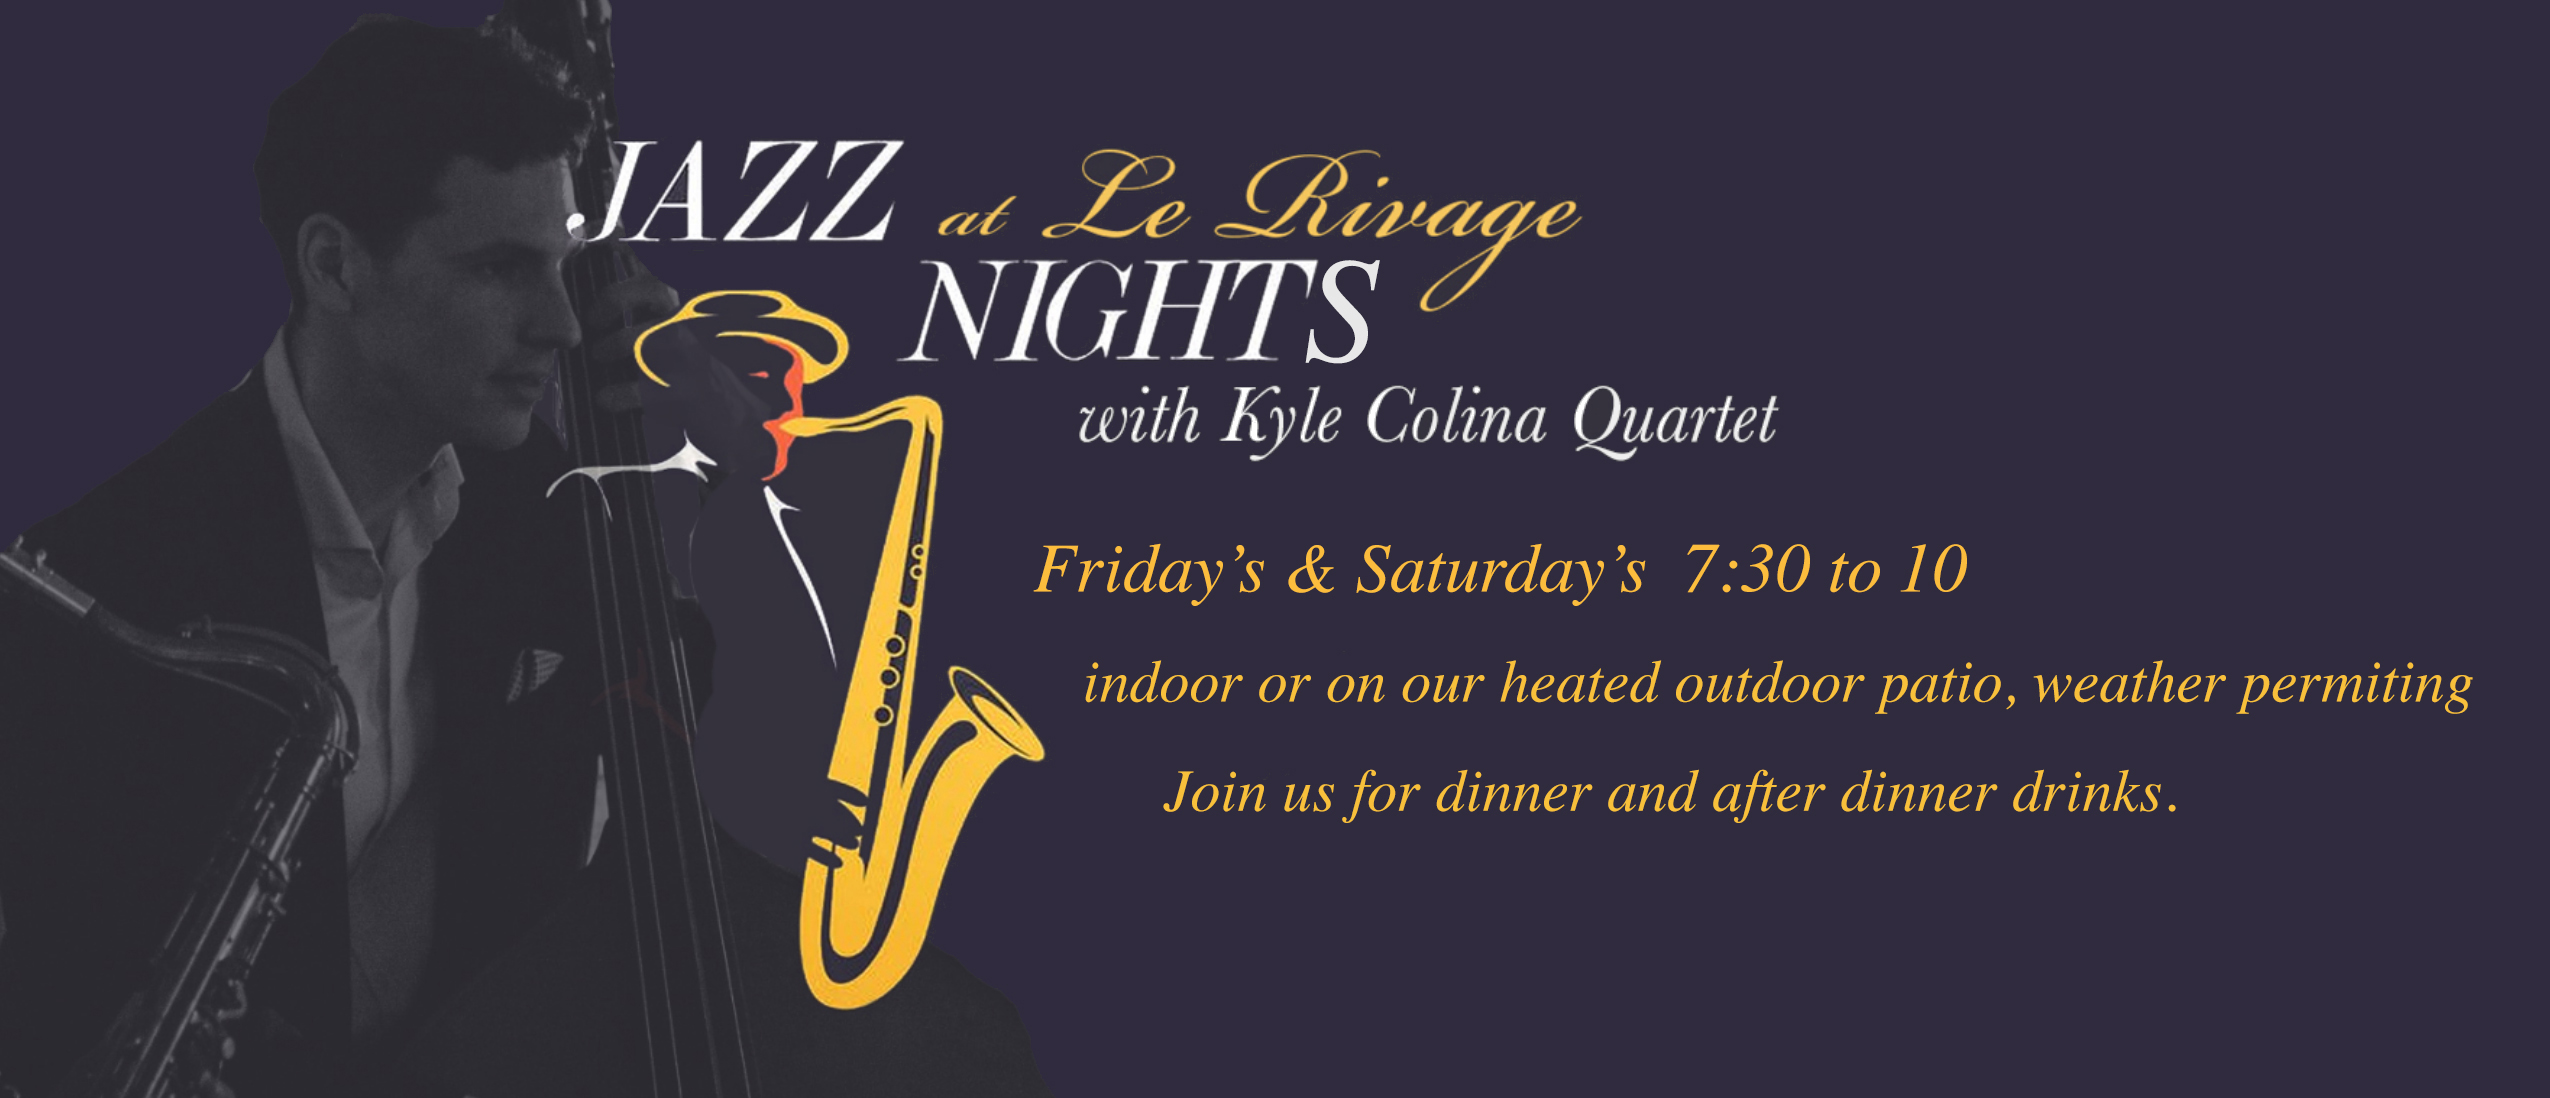 Jazz Nights at Le Rivage with Kyle Colina Quartet. Join us for dinner and after dinner drinks on Friday's from 7:00 PM to 10:00 PM. Call (212) 765-7374 to make a reservation